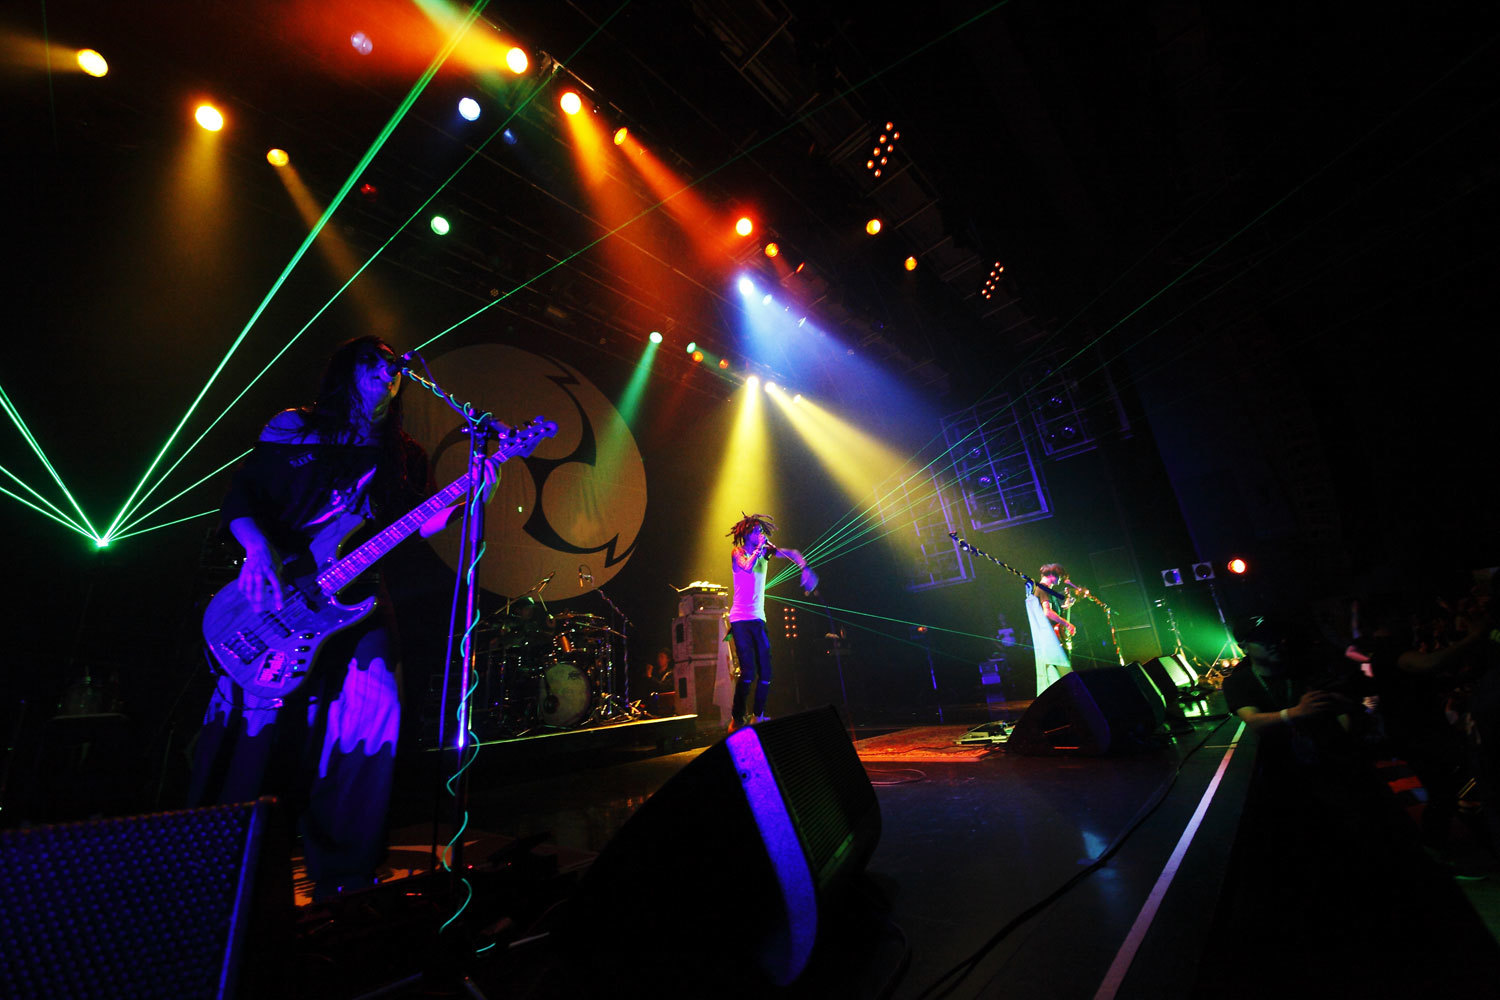 Photo by 平野大輔